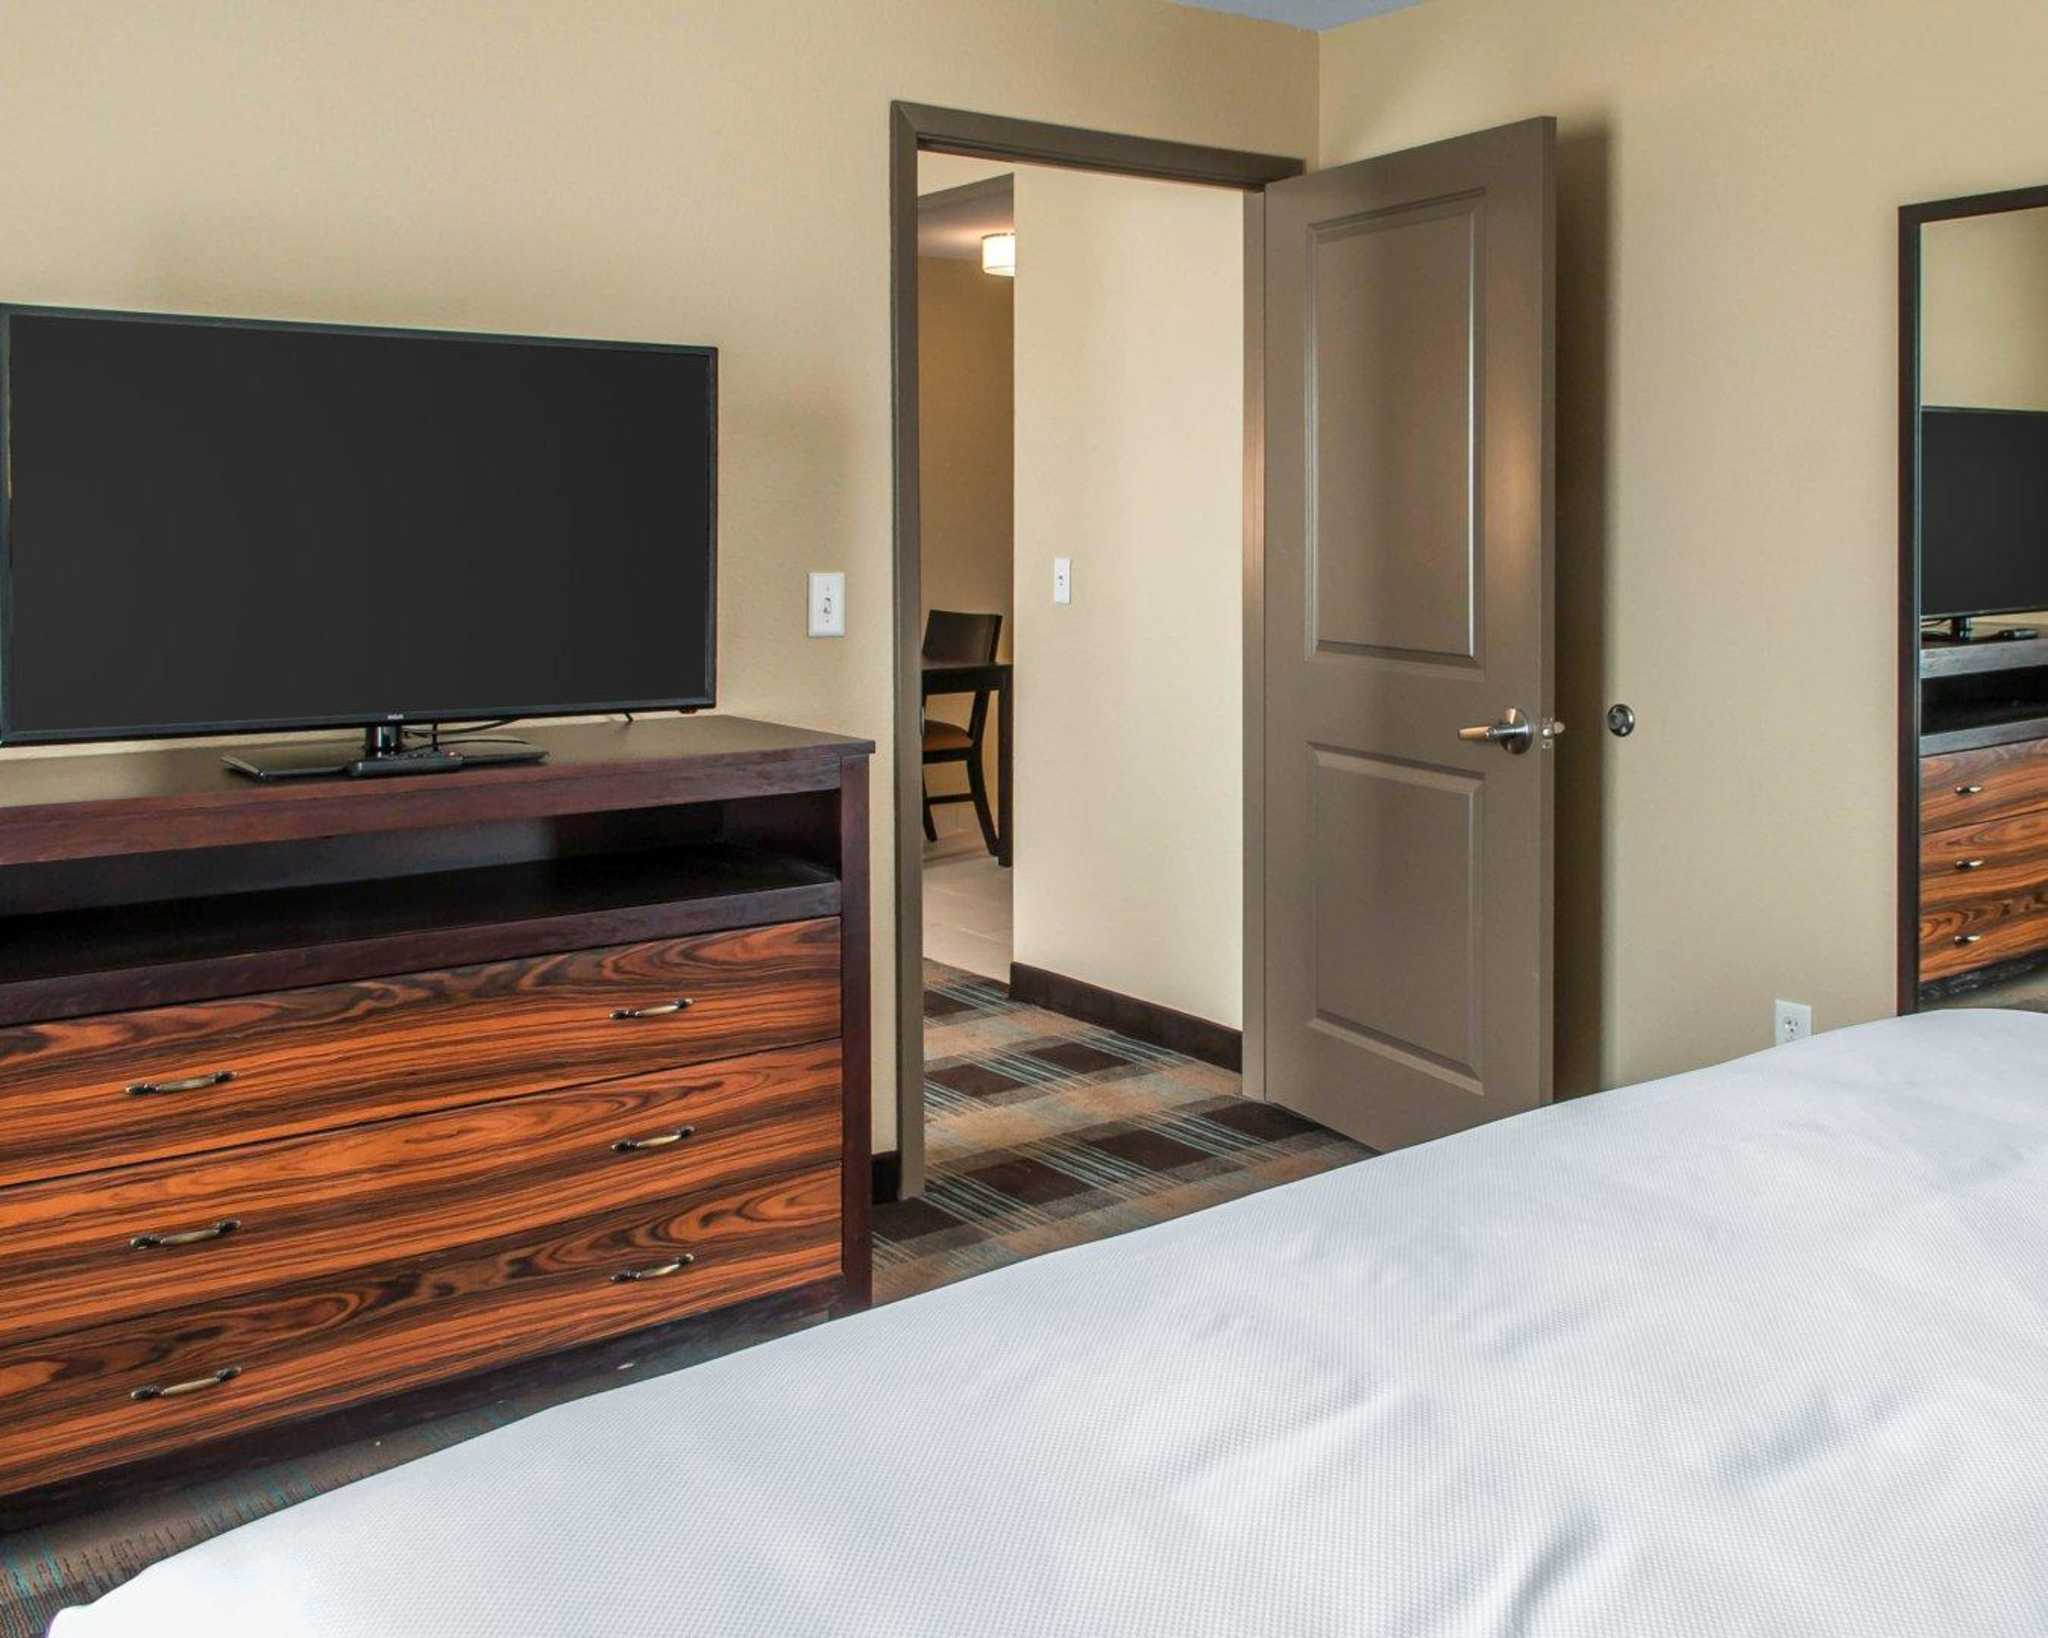 MainStay Suites image 22